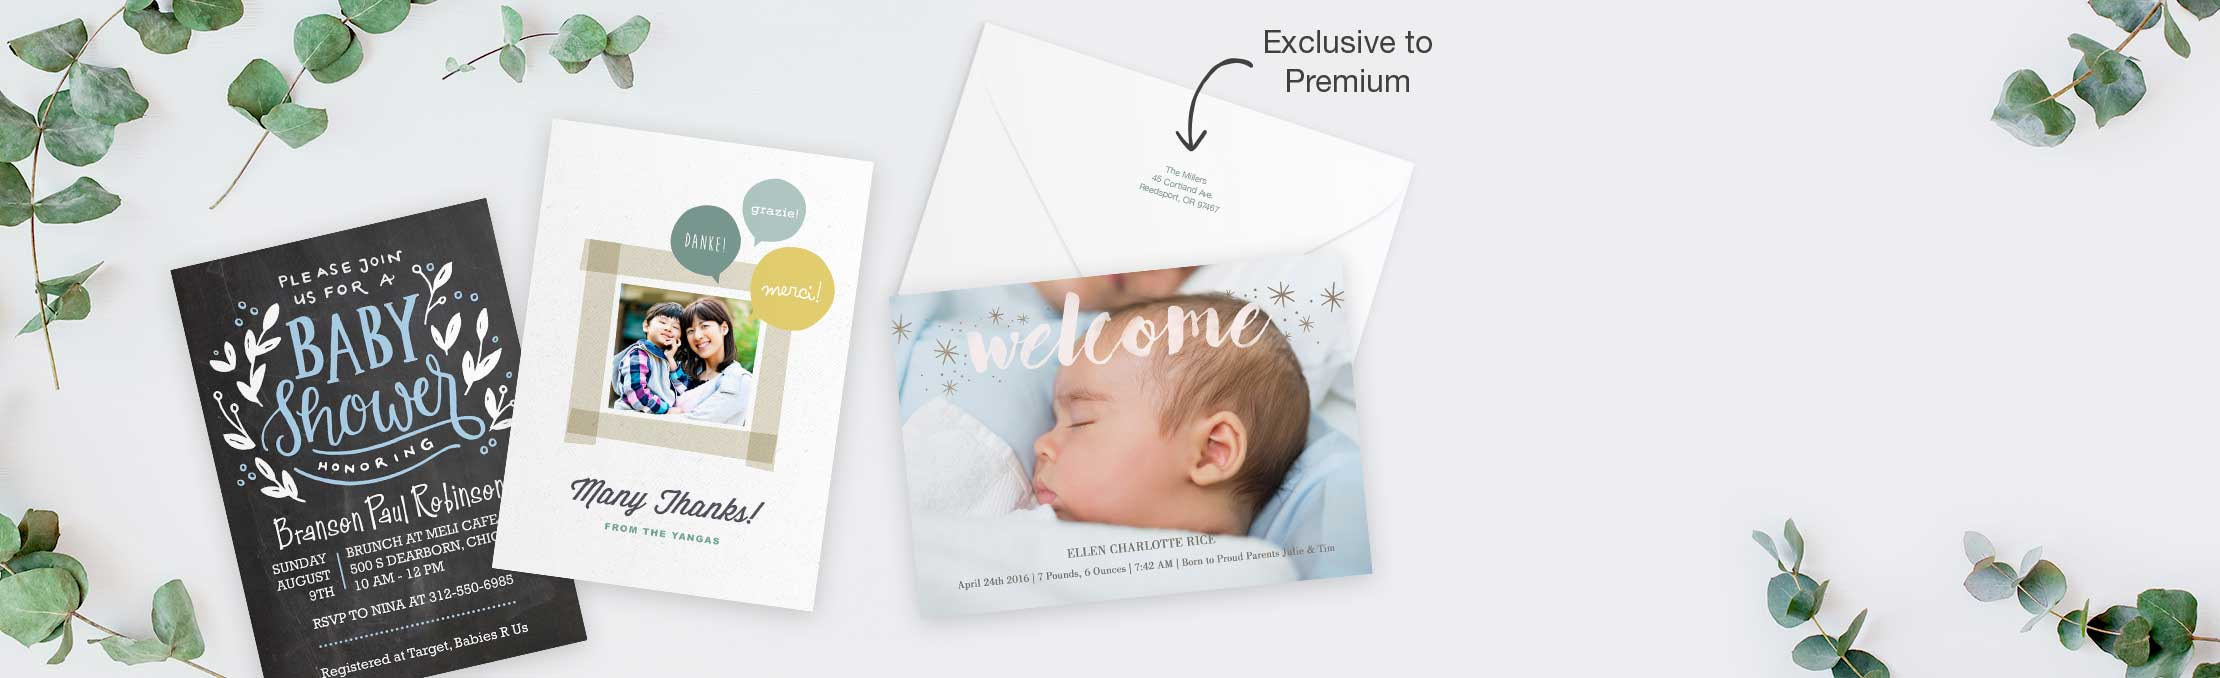 NEW!Premium Cards Send a meaningful message on our thickest cardstock yet. Create now